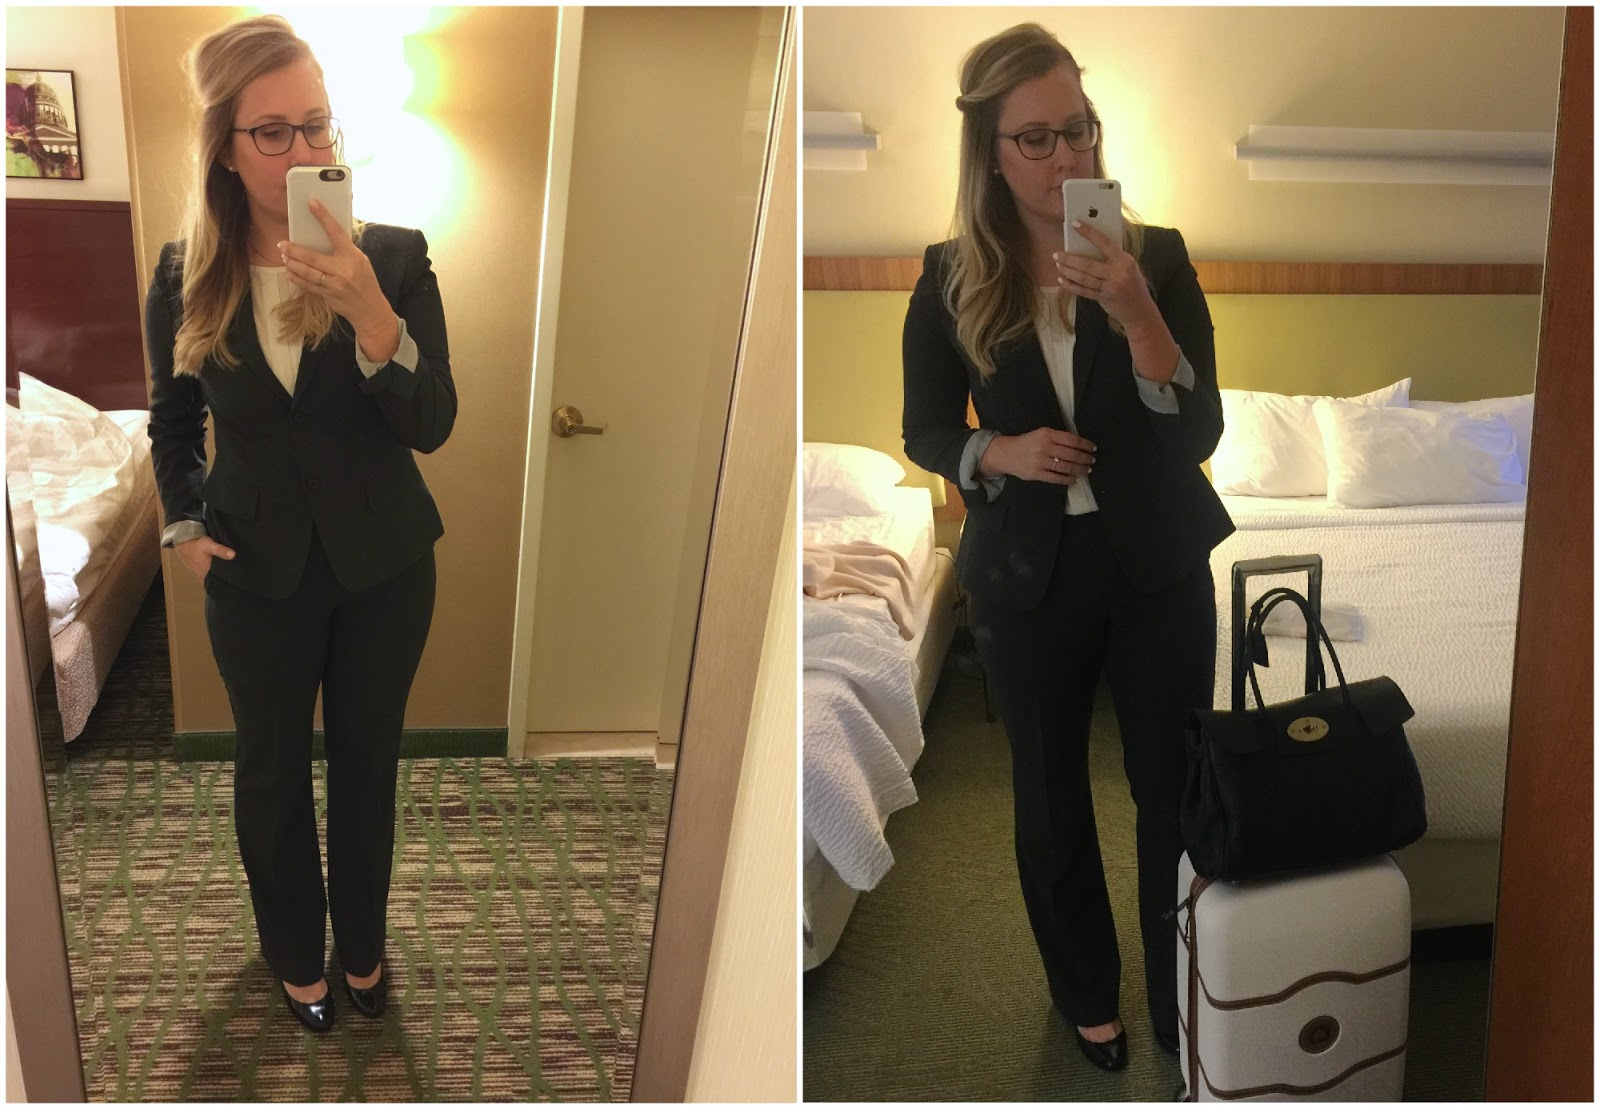 Franish: what to wear on residency interviews